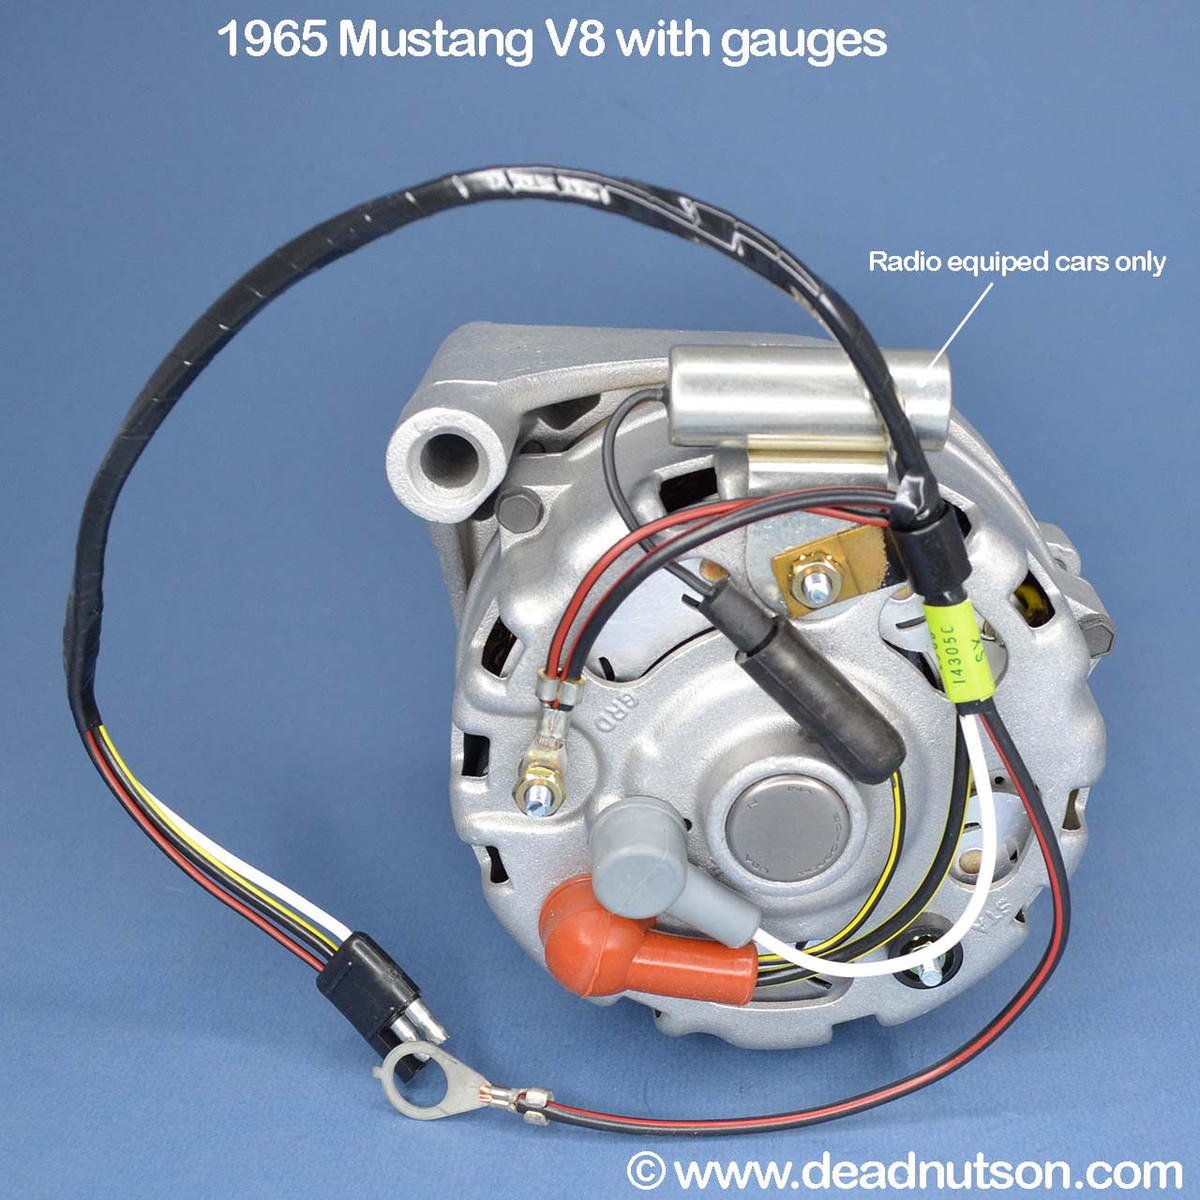 1965 Alternator Wire Harness V8 (with gauges) - Dead Nuts On